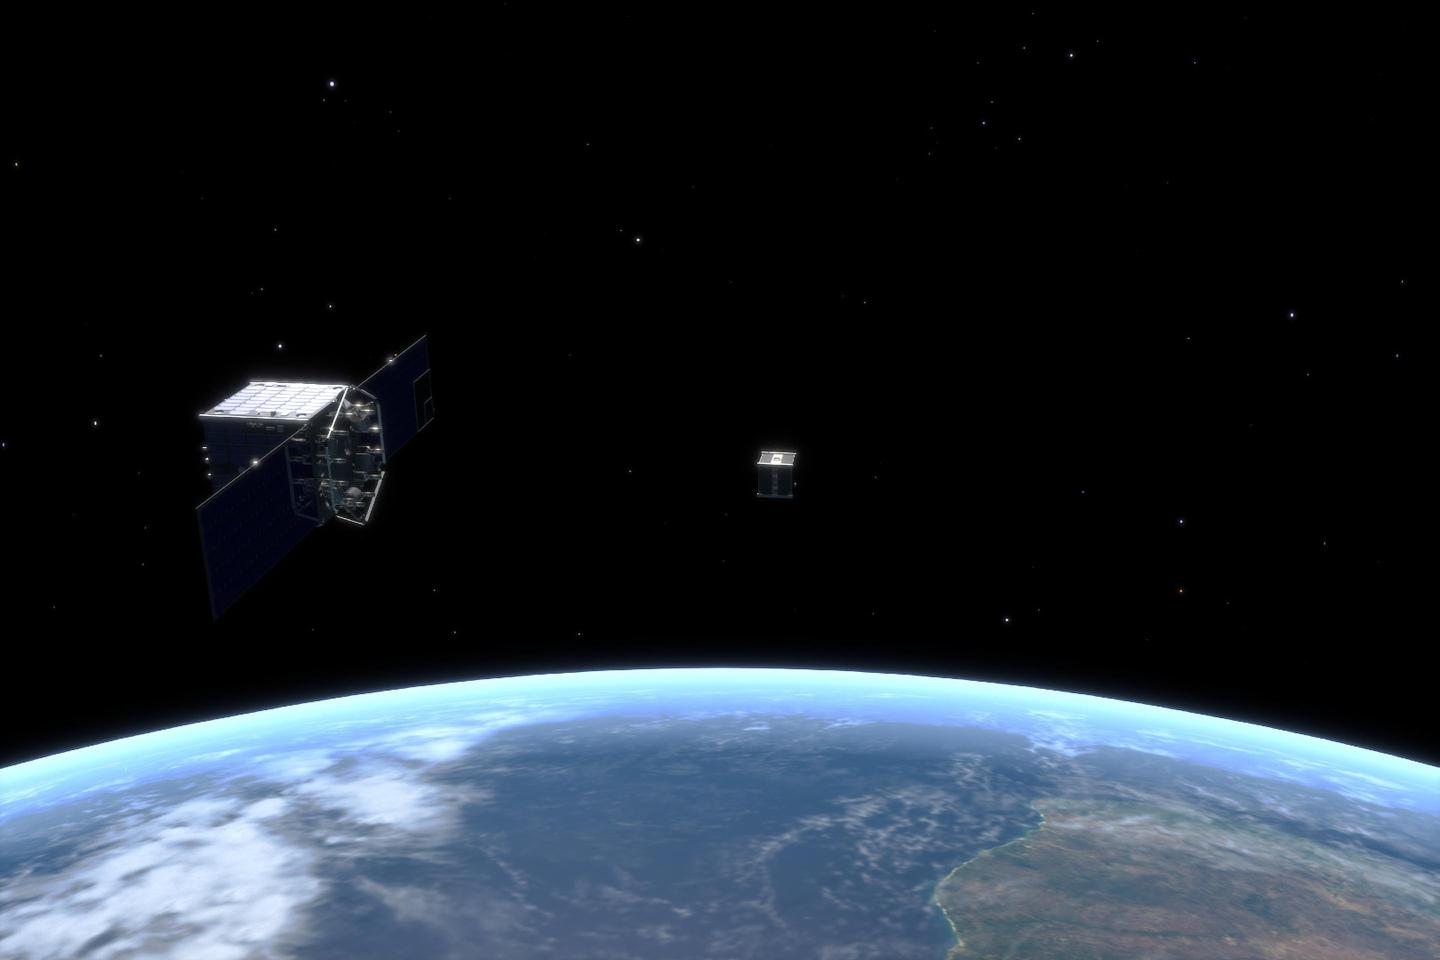 CleanSpace One approaches the SwissCube satellite